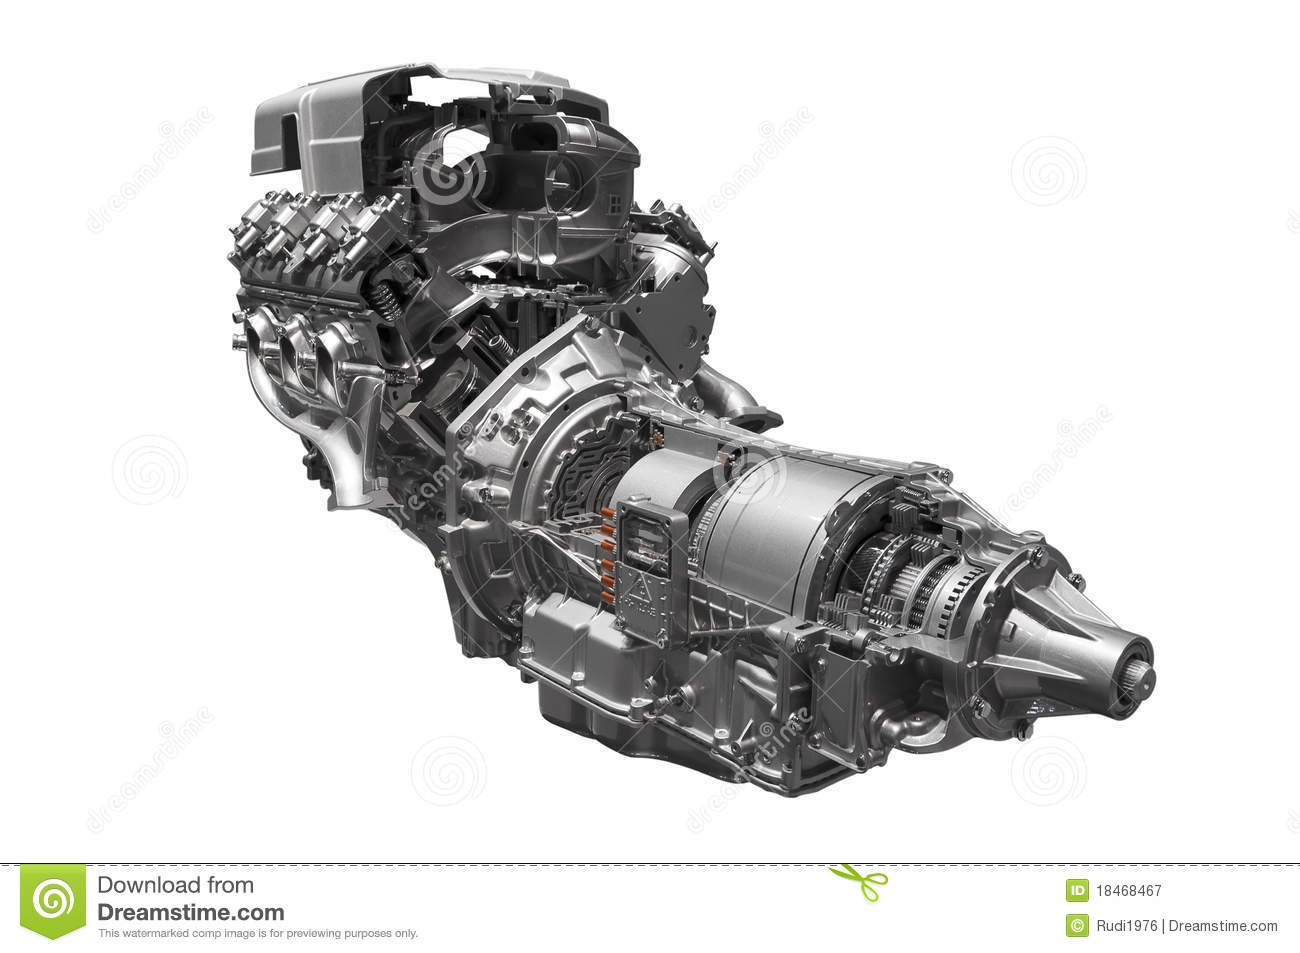 Royalty Free Stock Photography Hybrid Car Engine Image18468467 on hybrid engine animation